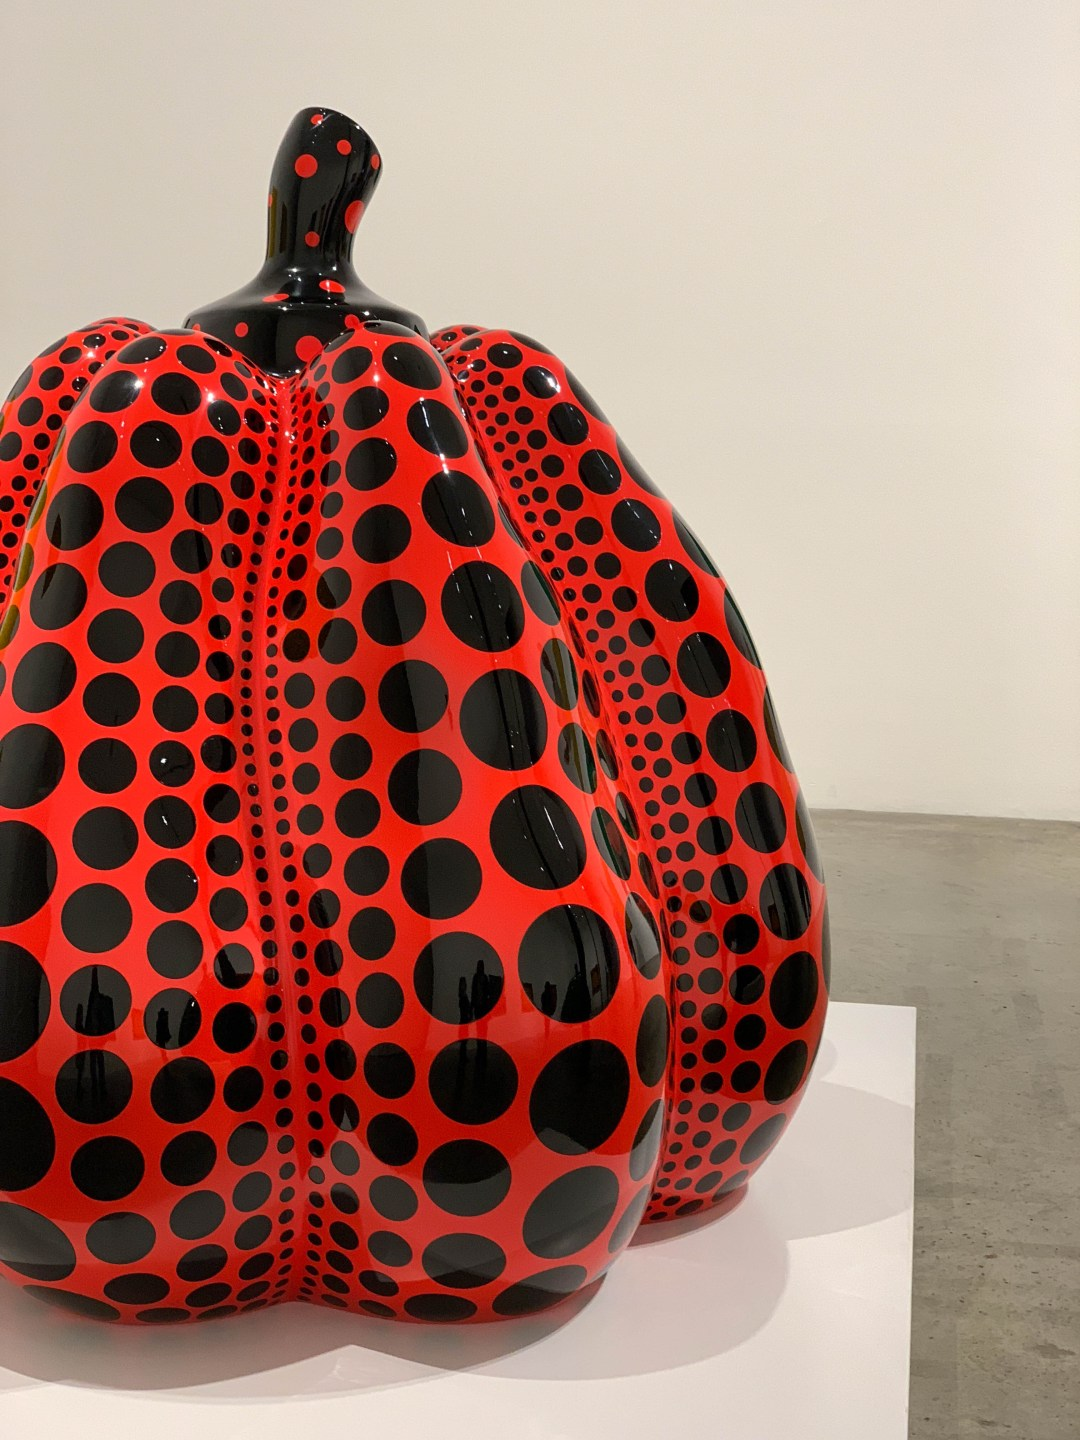 Yayoi Kusama pumpkins and paintings in London